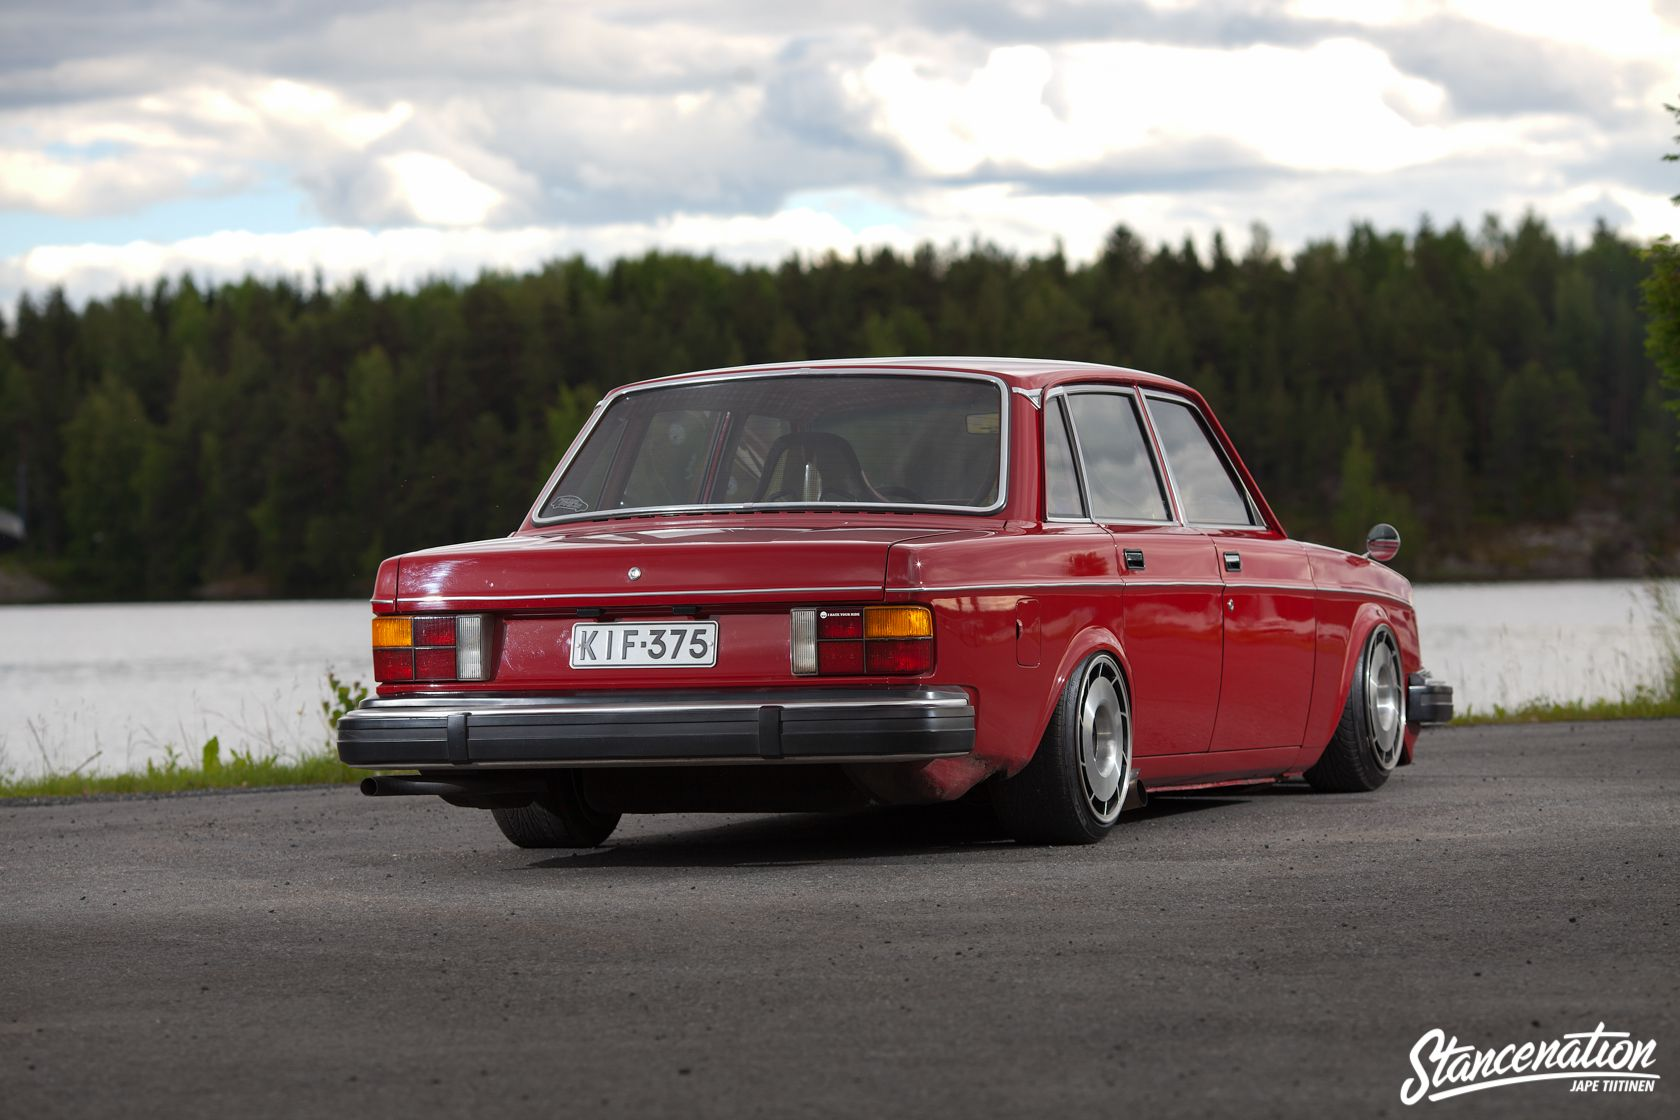 Volvo 240 turbo turbobricks forums swedish fanatics mot rhead pinterest volvo 240 and volvo